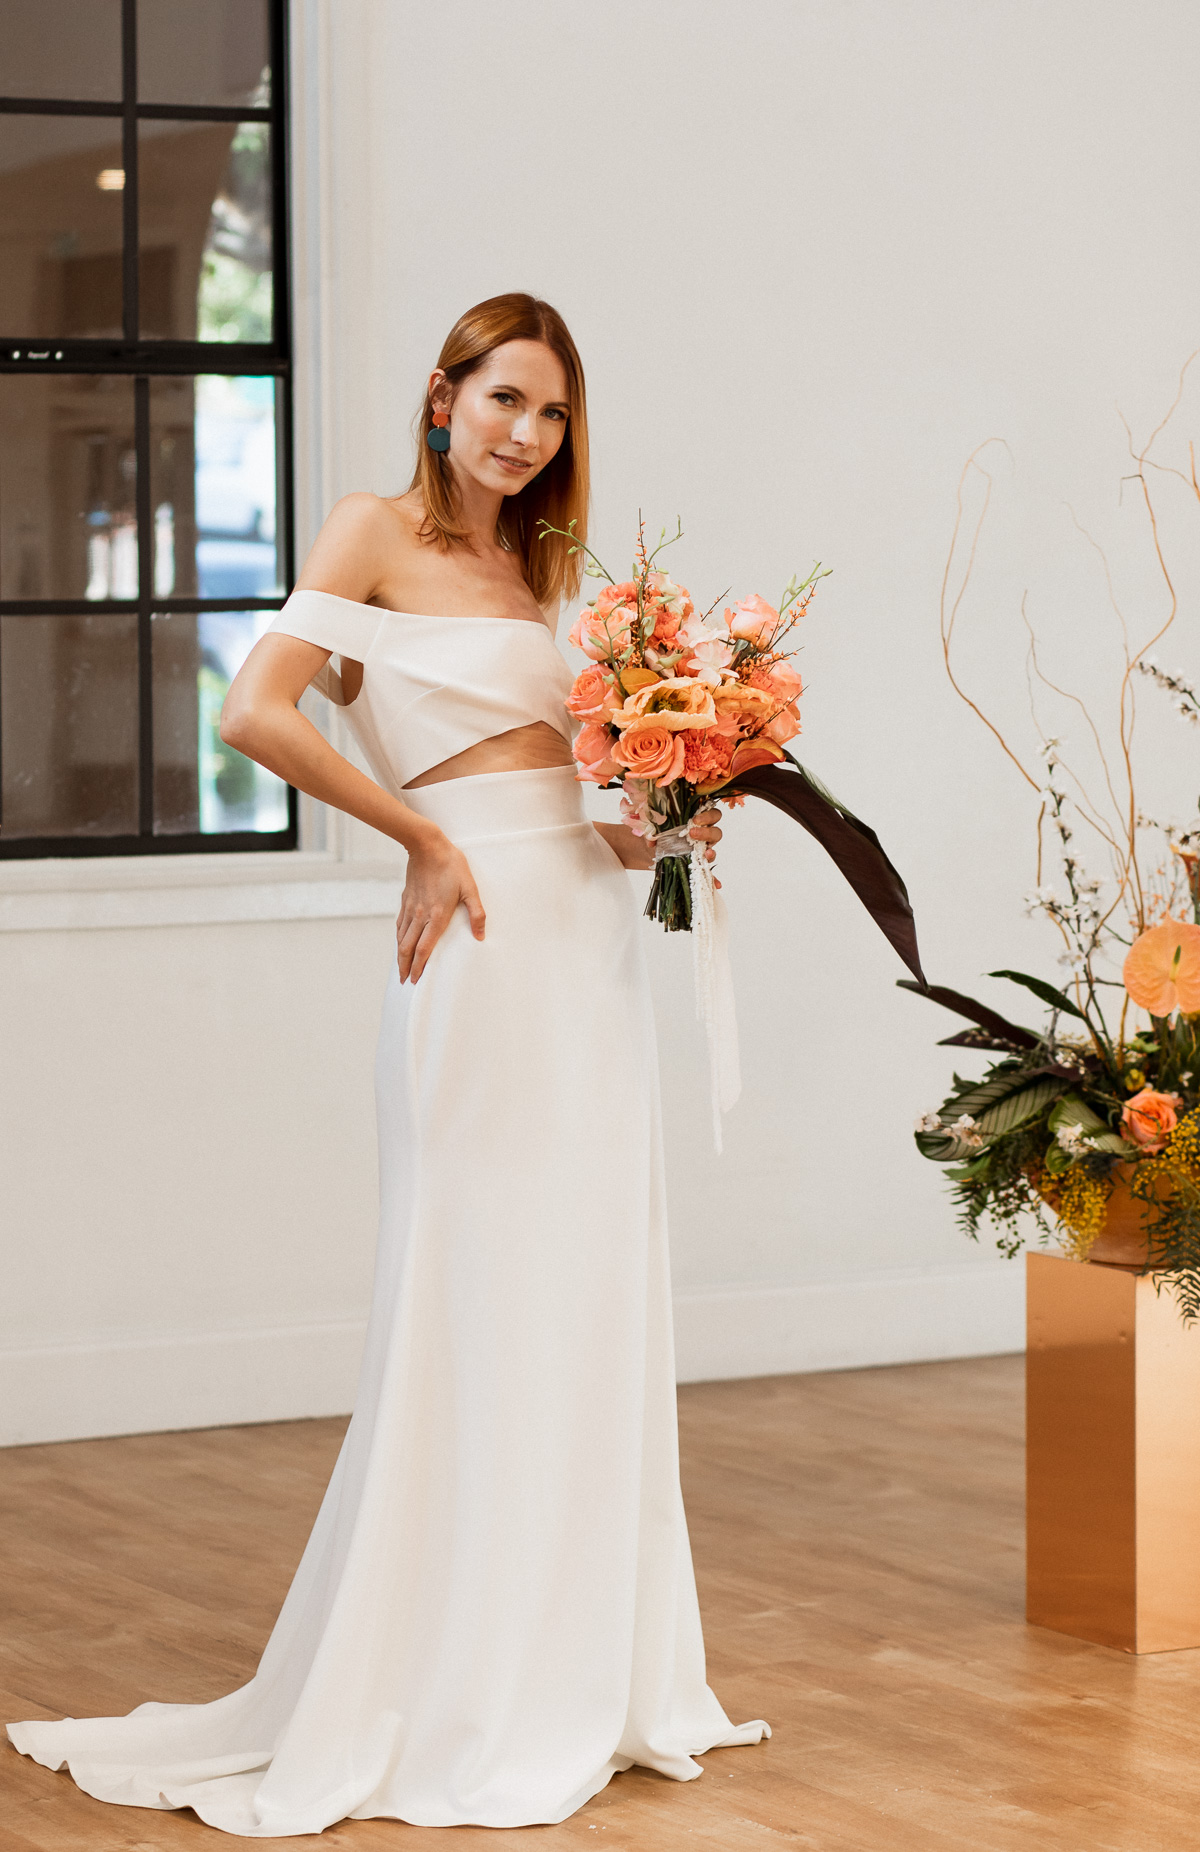 GEOMETRIC CUTOUT WEDDING GOWN